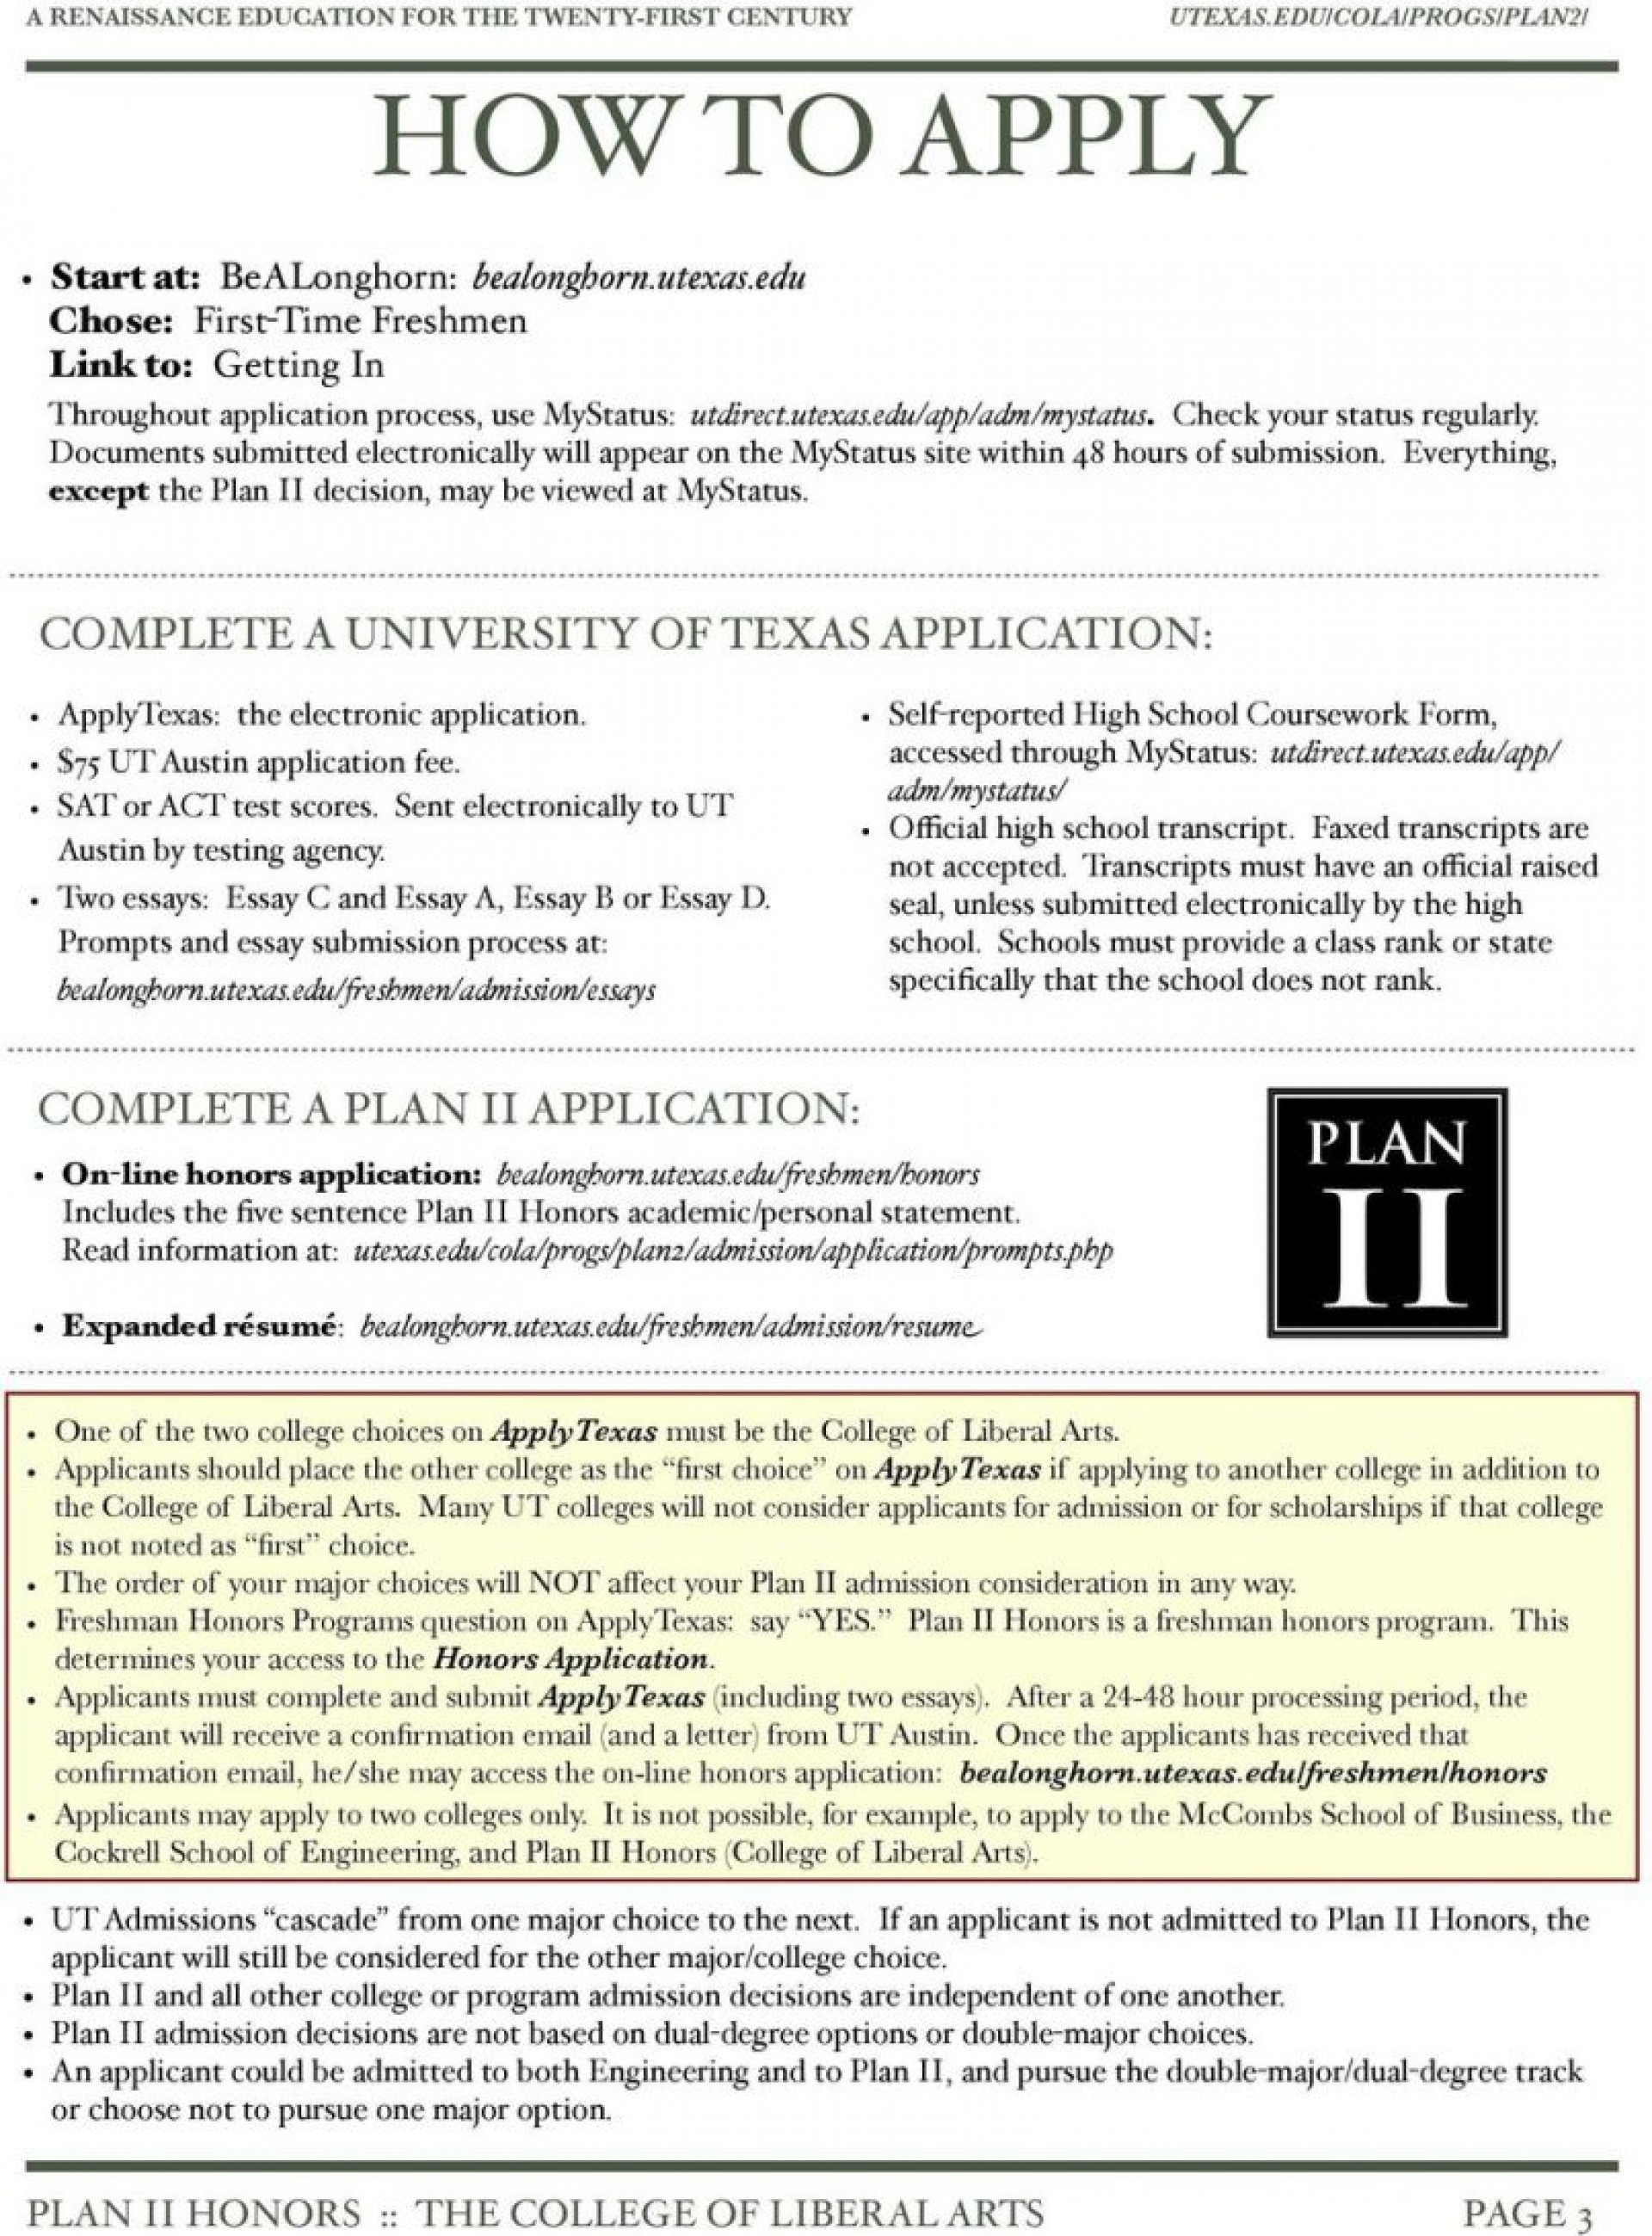 004 Essay Example Applytexas Prompts Poemdoc Or Apply Texas Topic Examples P Top Essays Word Limit 2016 2019 1920